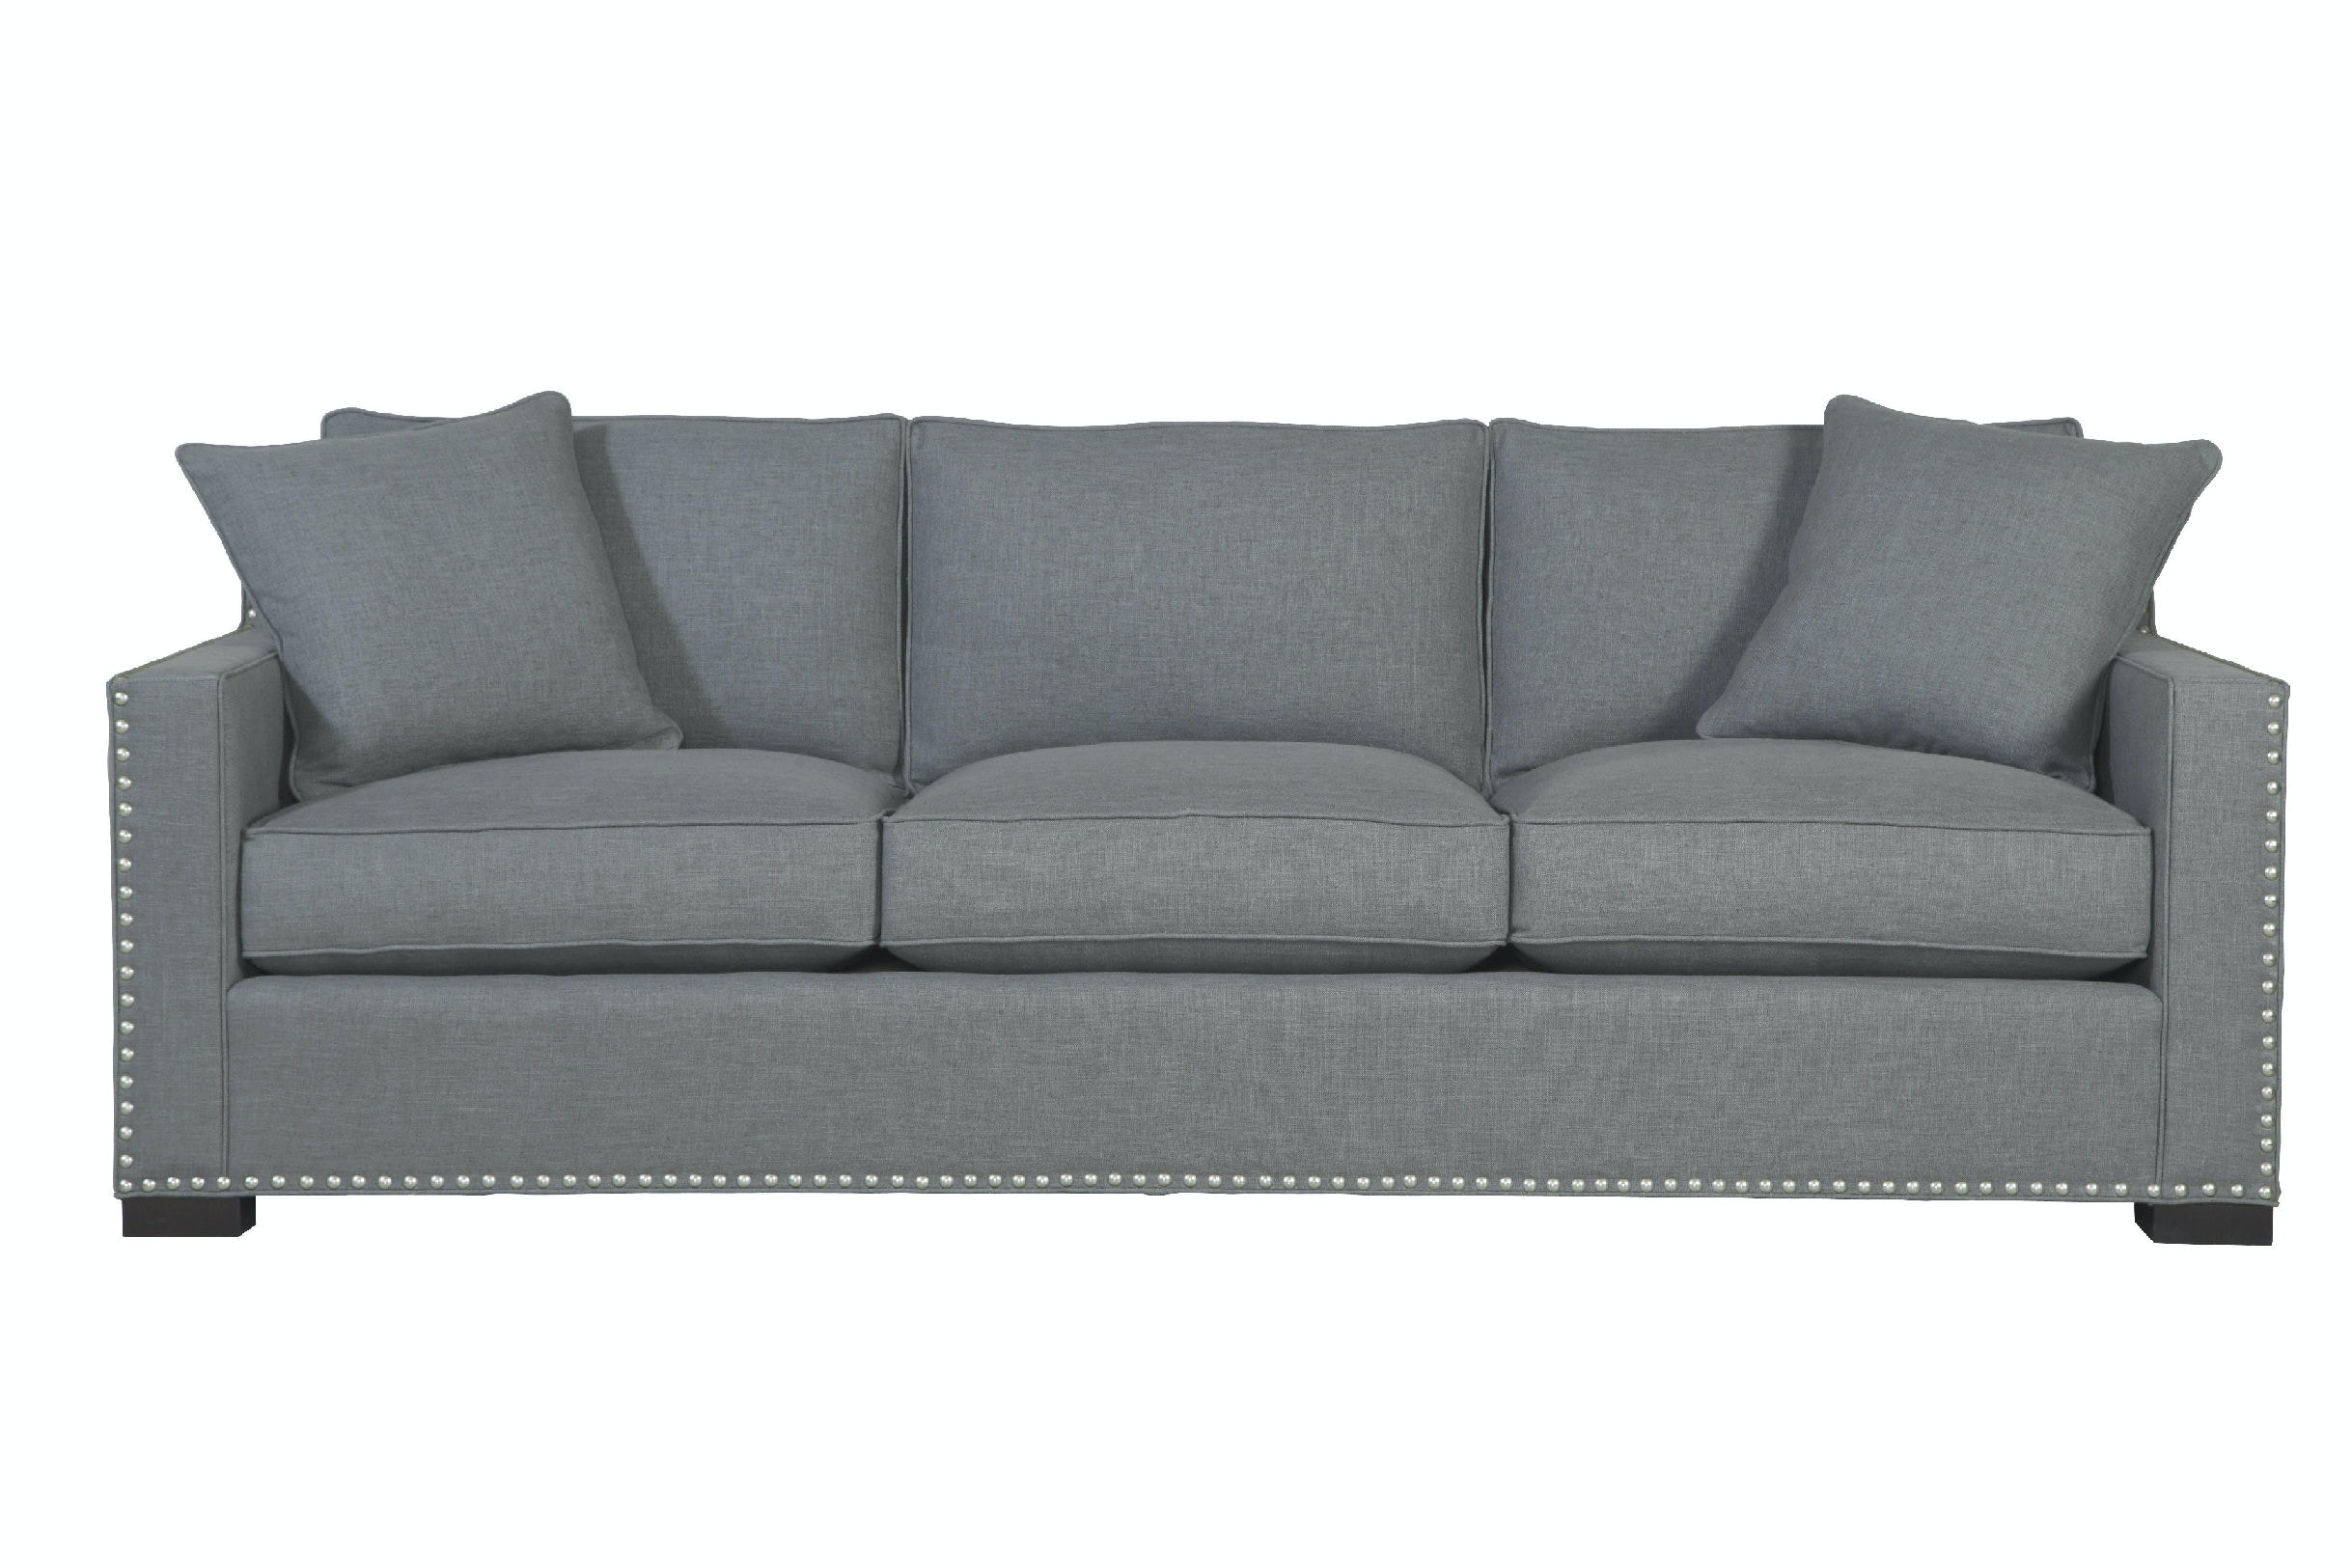 tomas fabric sofa chaise convertible bed dark java living room ideas with light grey sofas osmond designs orem ut lehi 22451 jesse